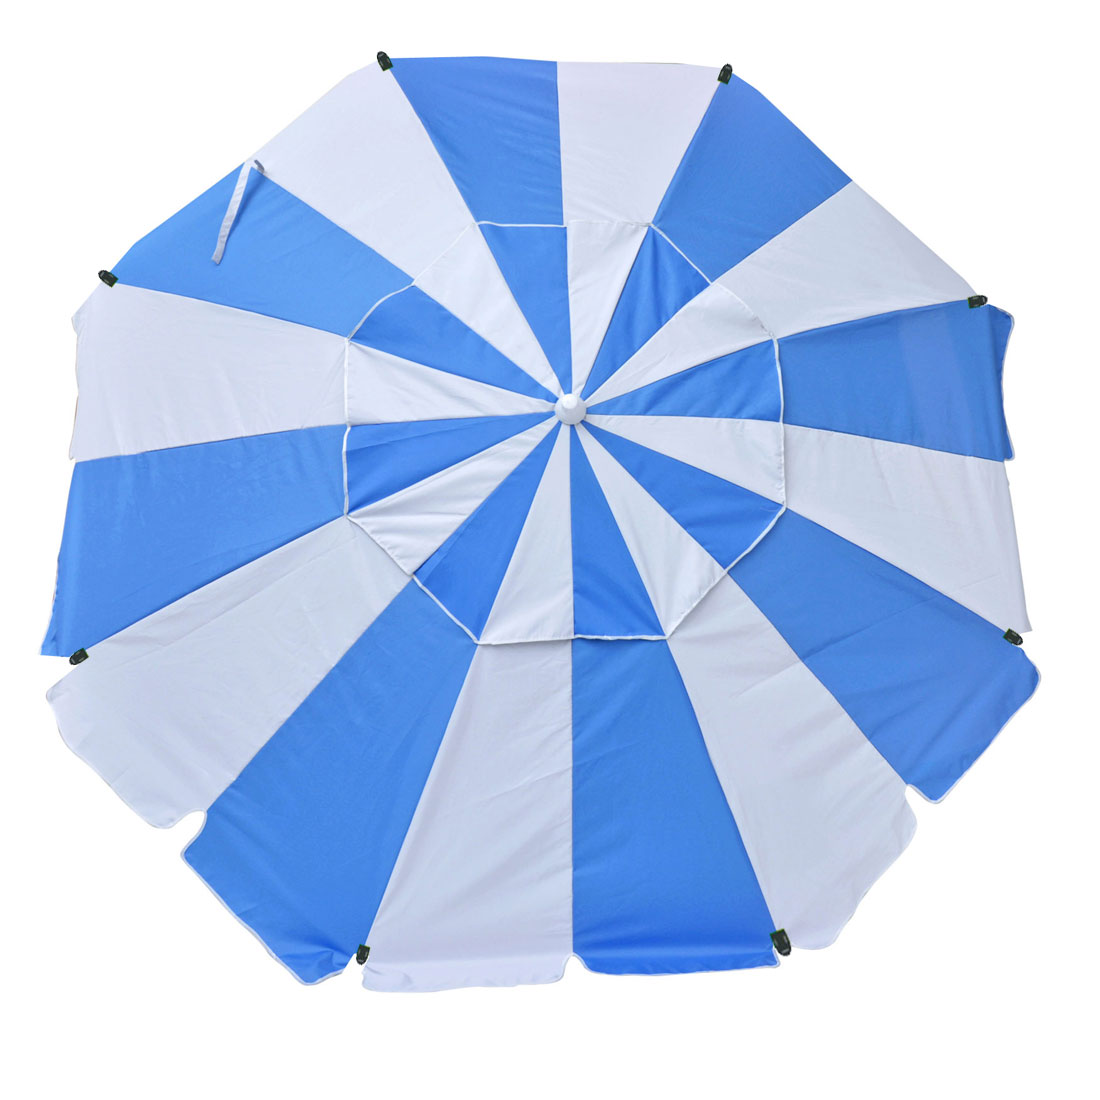 7 ft Platinum Heavy Duty Beach Umbrella with Reinforced Fiberglass Ribs, Carry Bag, Accessory Hanging Hook, UPF100